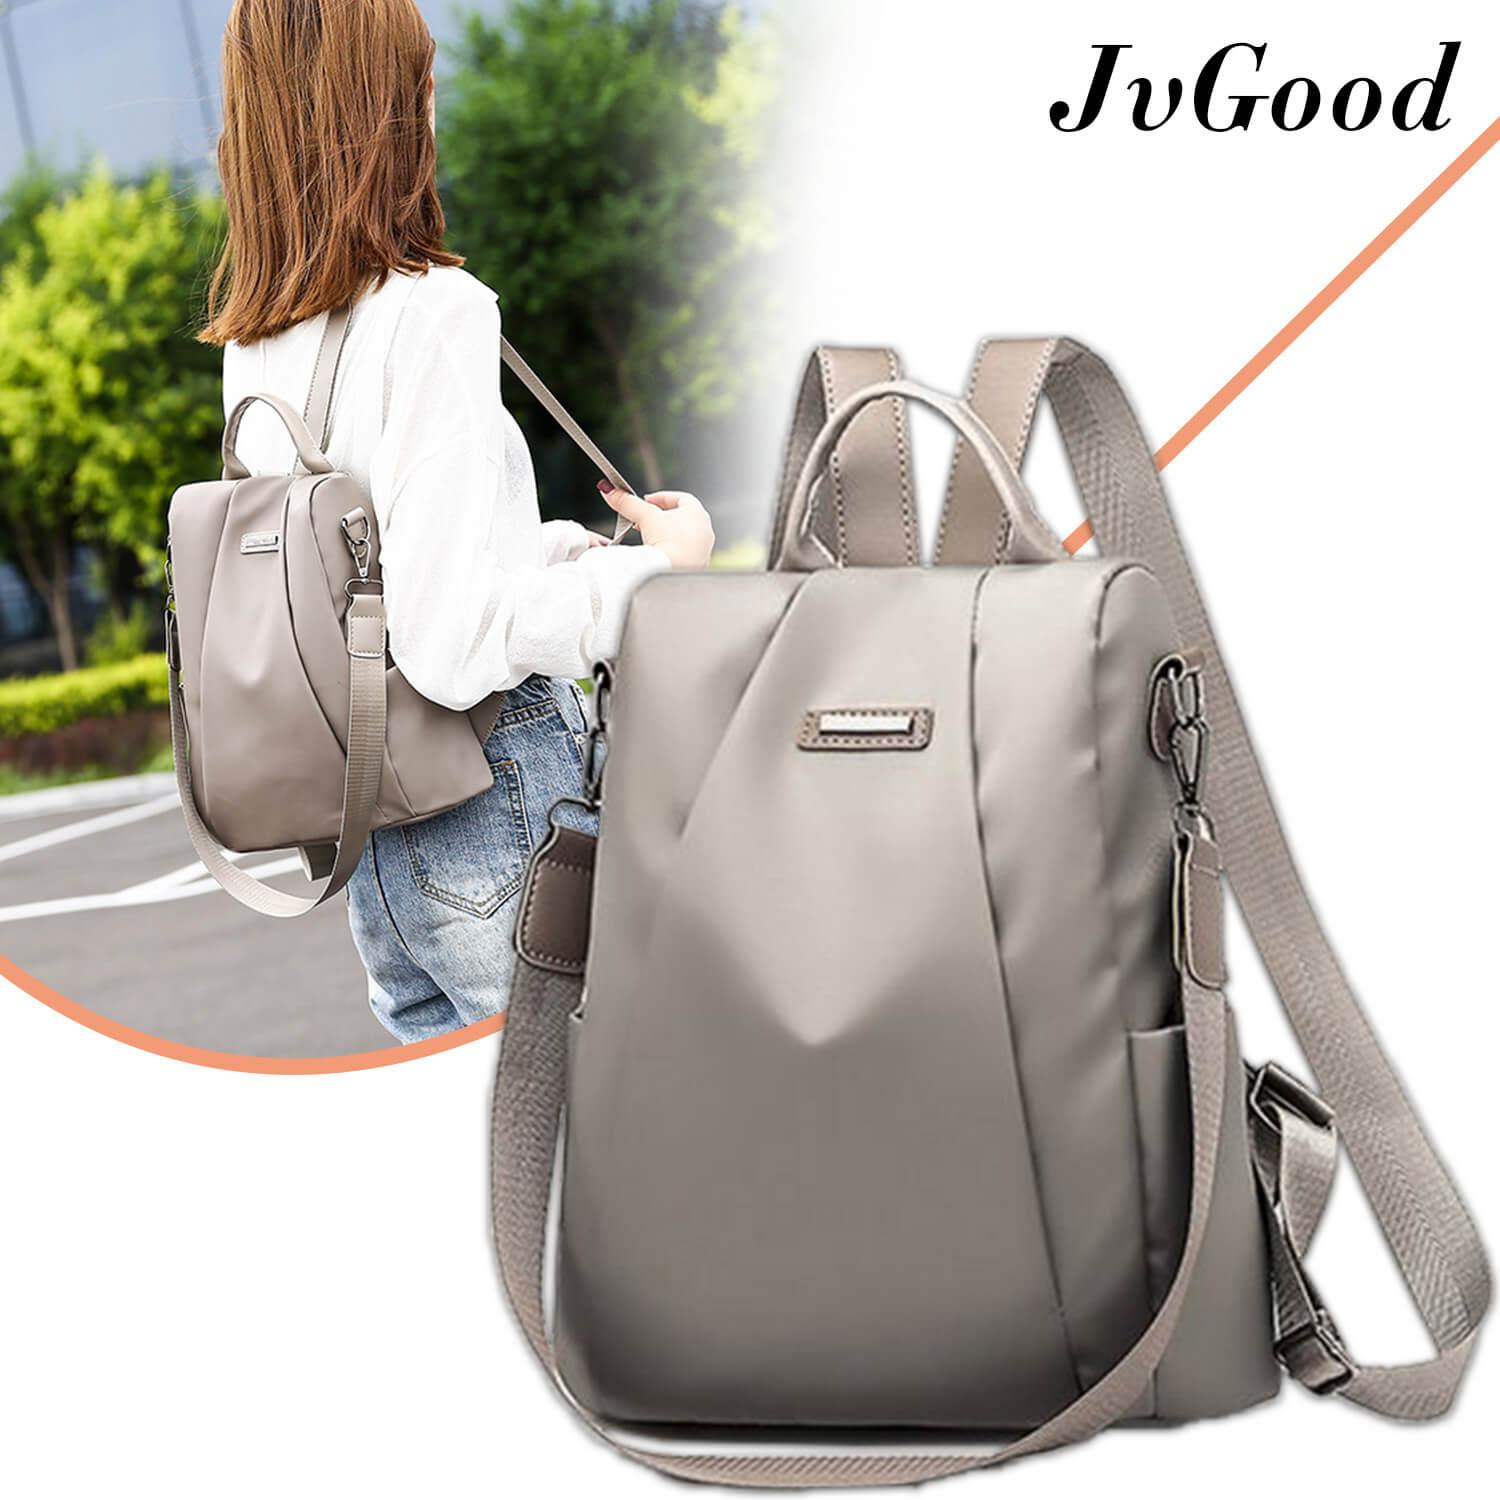 Tas Ransel Punggung Wanita Lv Mini Import Baranded Batam Backpack Jvgood Fashion Shoulder Bag Backpacks Laptop Computer College School Bookbag